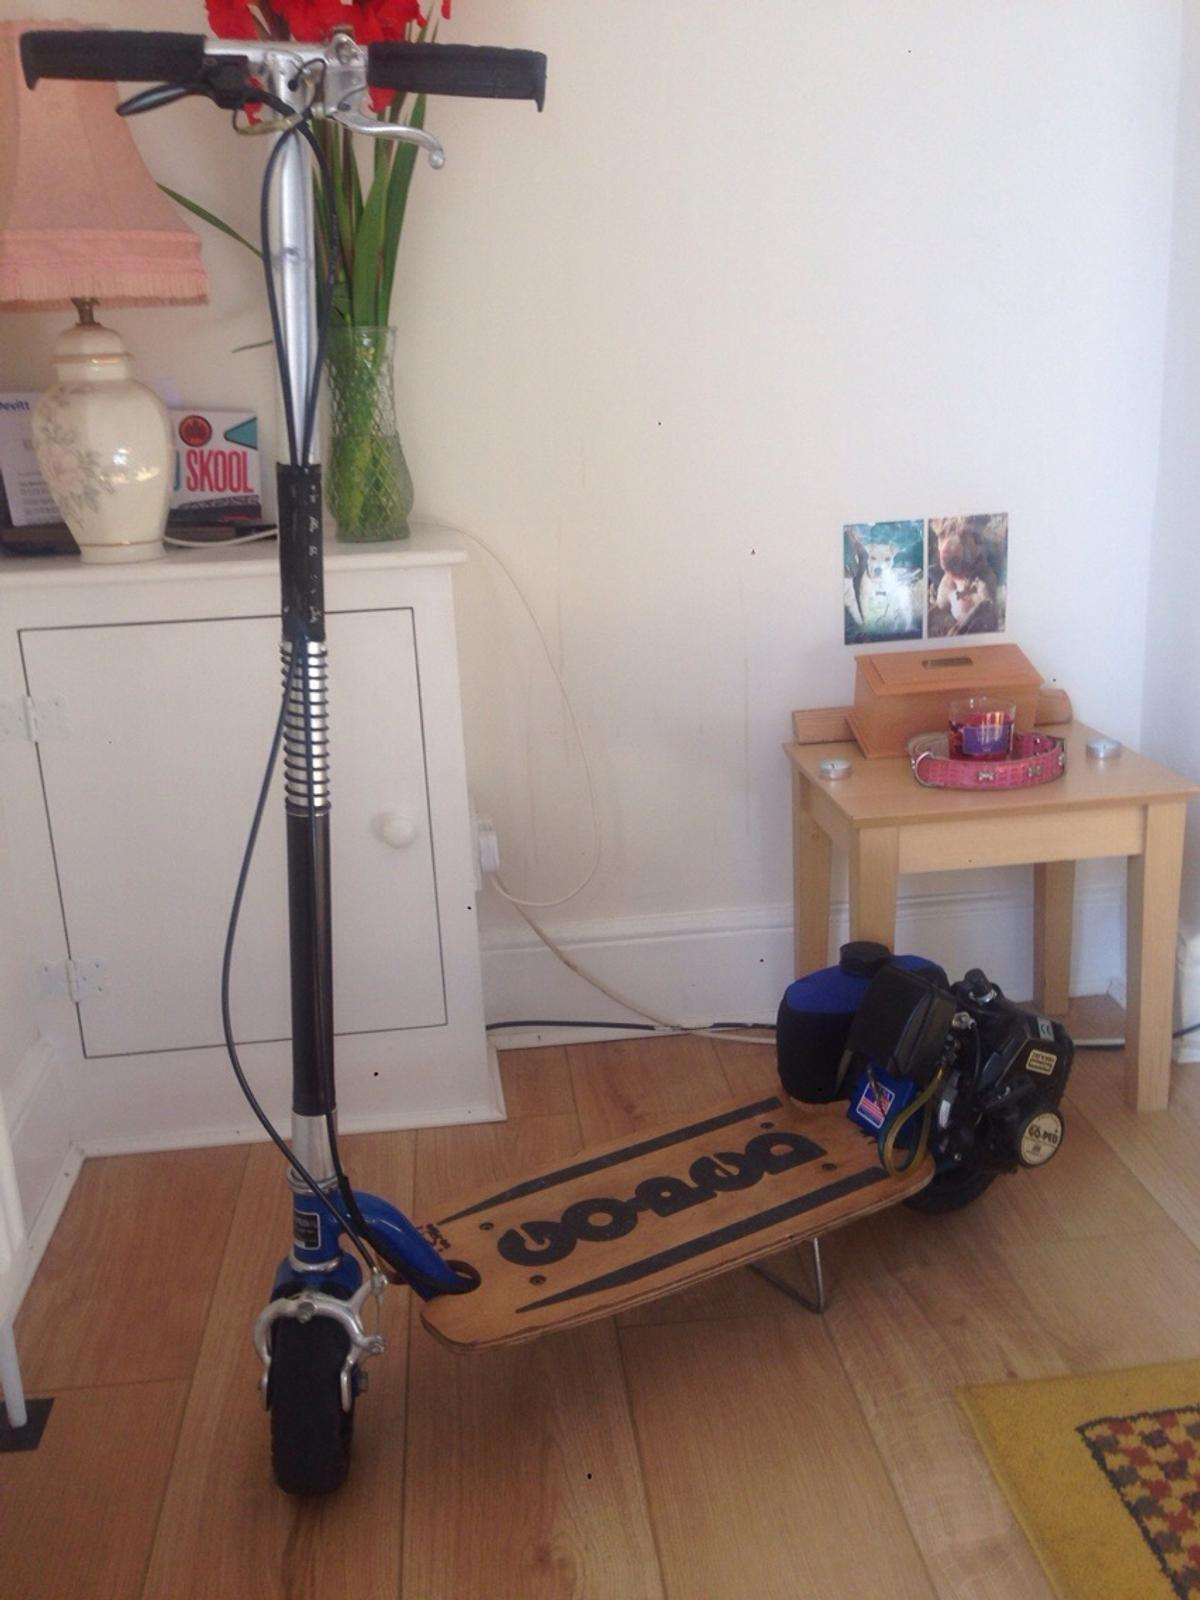 Goped Sport Petrol scooter in FY4 Blackpool for £150 00 for sale